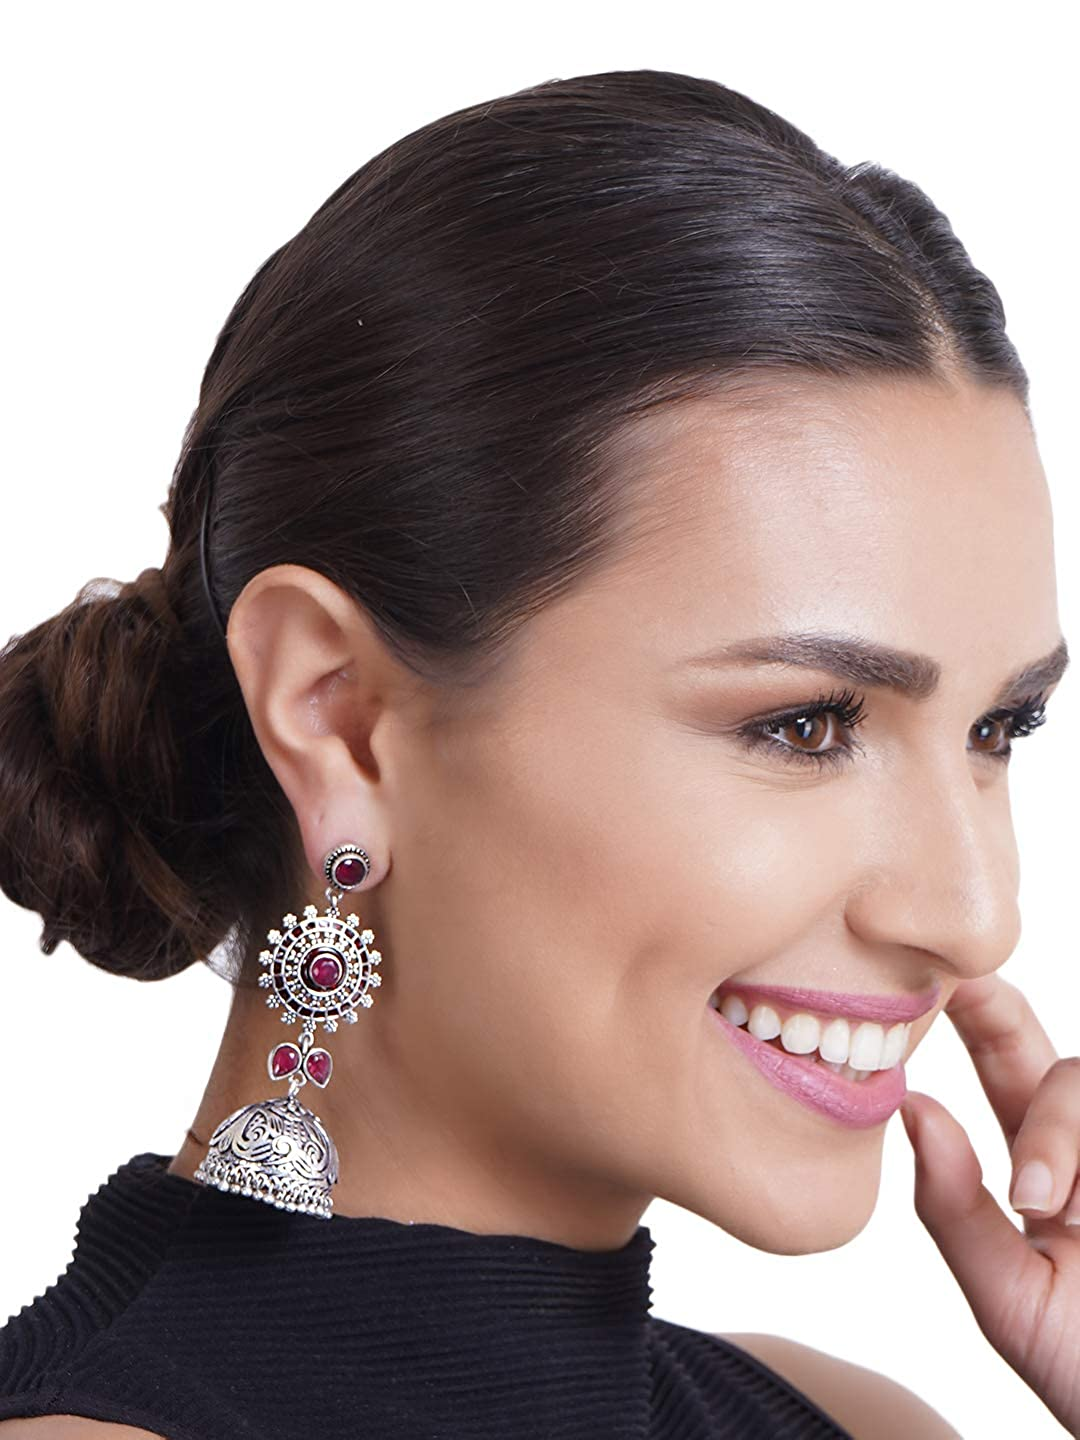 Crunchy Fashion Bollywood Style Traditional Indian Oxidised Silver Jewelry Jhumki Jhumka Earrings for Women//Girls